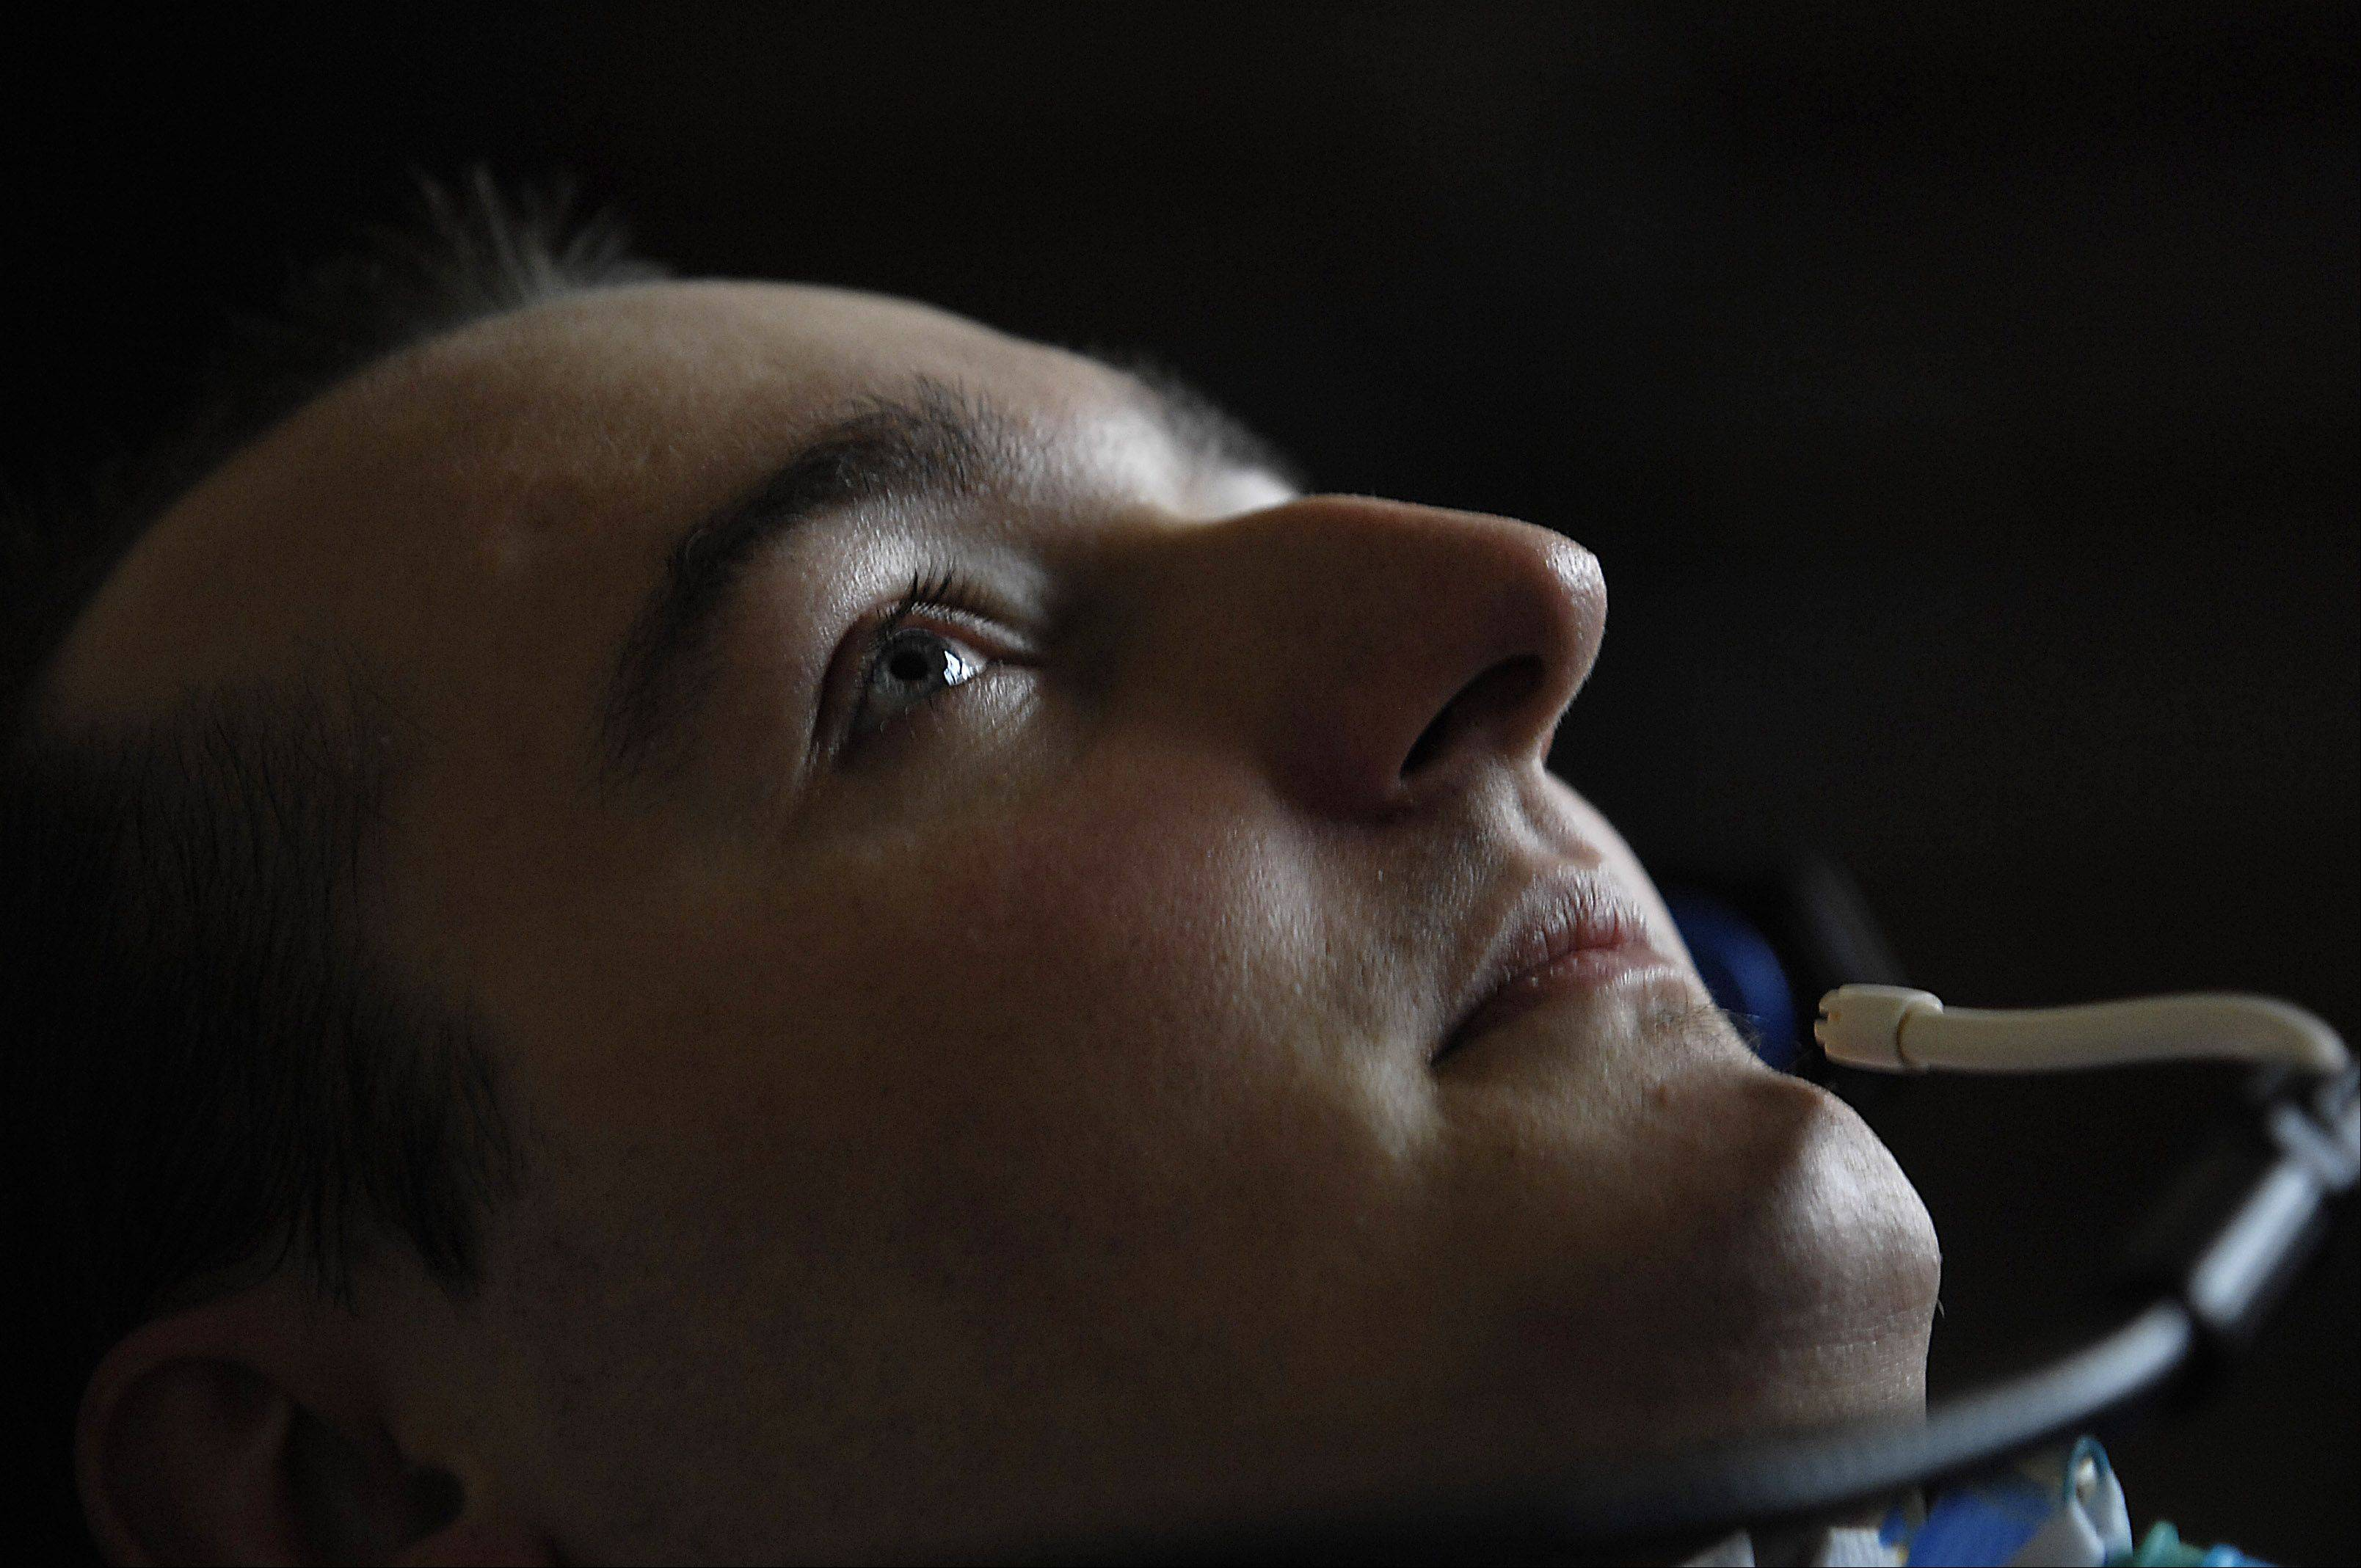 Rob Komosa was able to control his wheelchair by using a sip-n-puff device after the 1999 Rolling Meadows High School football accident that left him a quadriplegic. He died Saturday night at age 30.